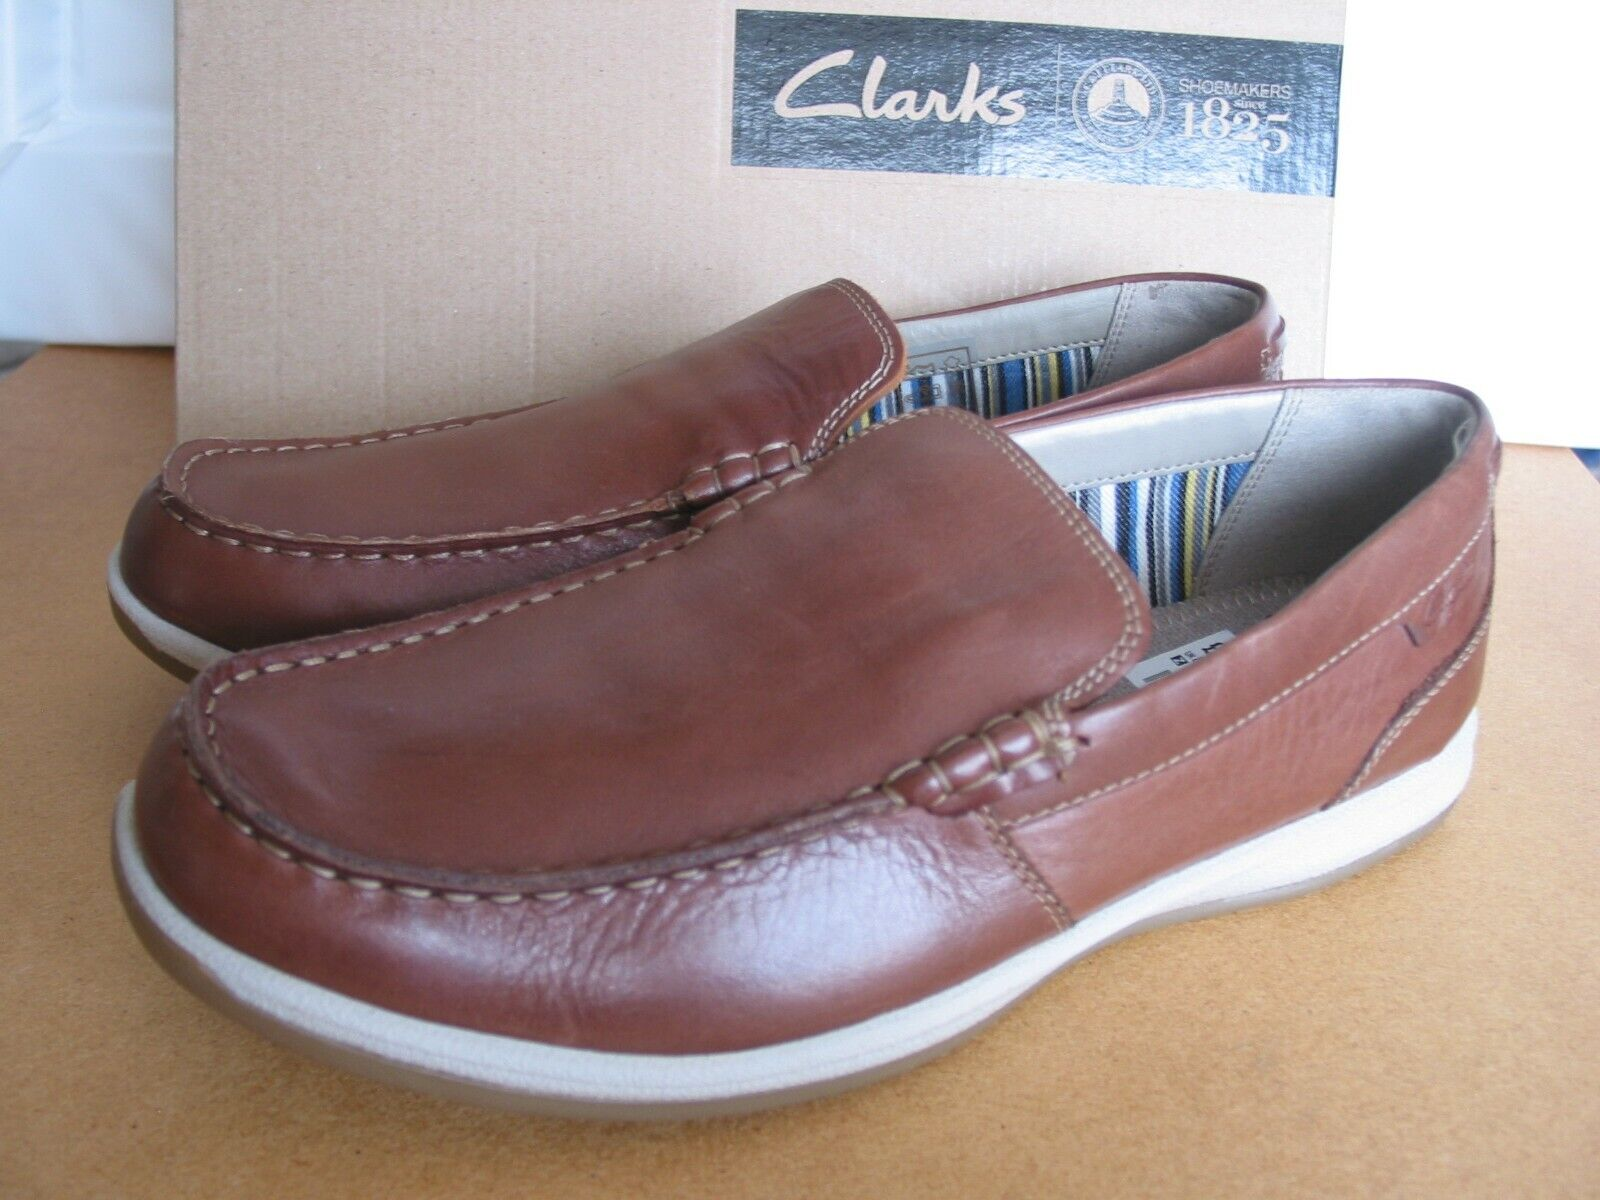 NEW CLARKS FALLSTON STEP CUSHION SOFT ORTHOLITE BROWN LEATHER SHOES UK 8.5